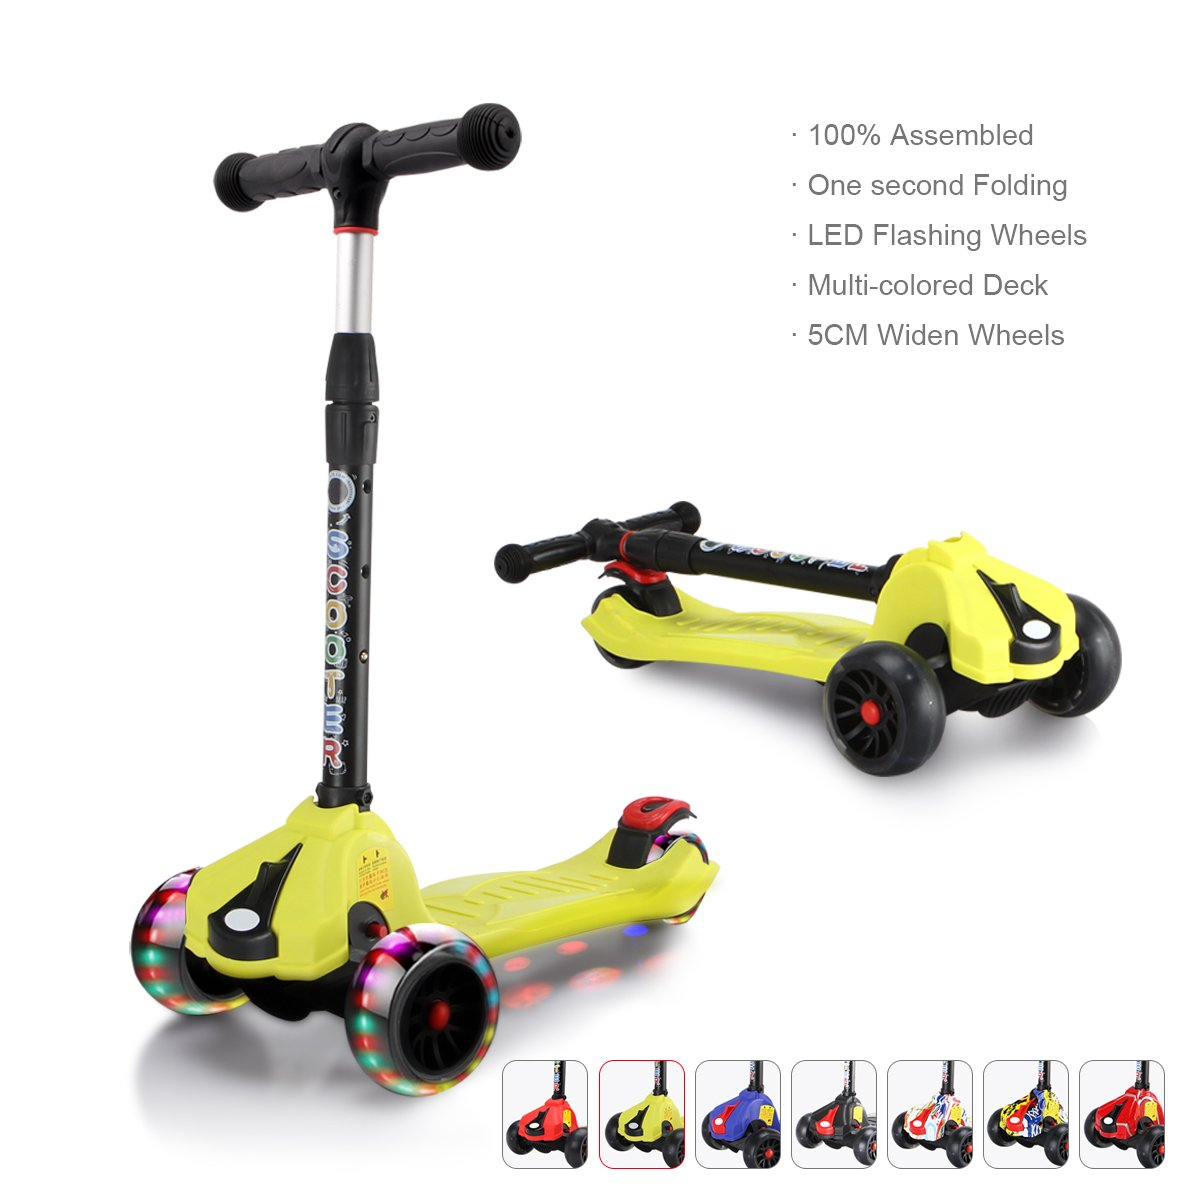 XJD Kids Scooters Adjustable Height Toddler Scooters 3 Wheel Folding Extra-Wide Deck 5CM Big PU Flashing Wheels 100% Assembled (Yellow)